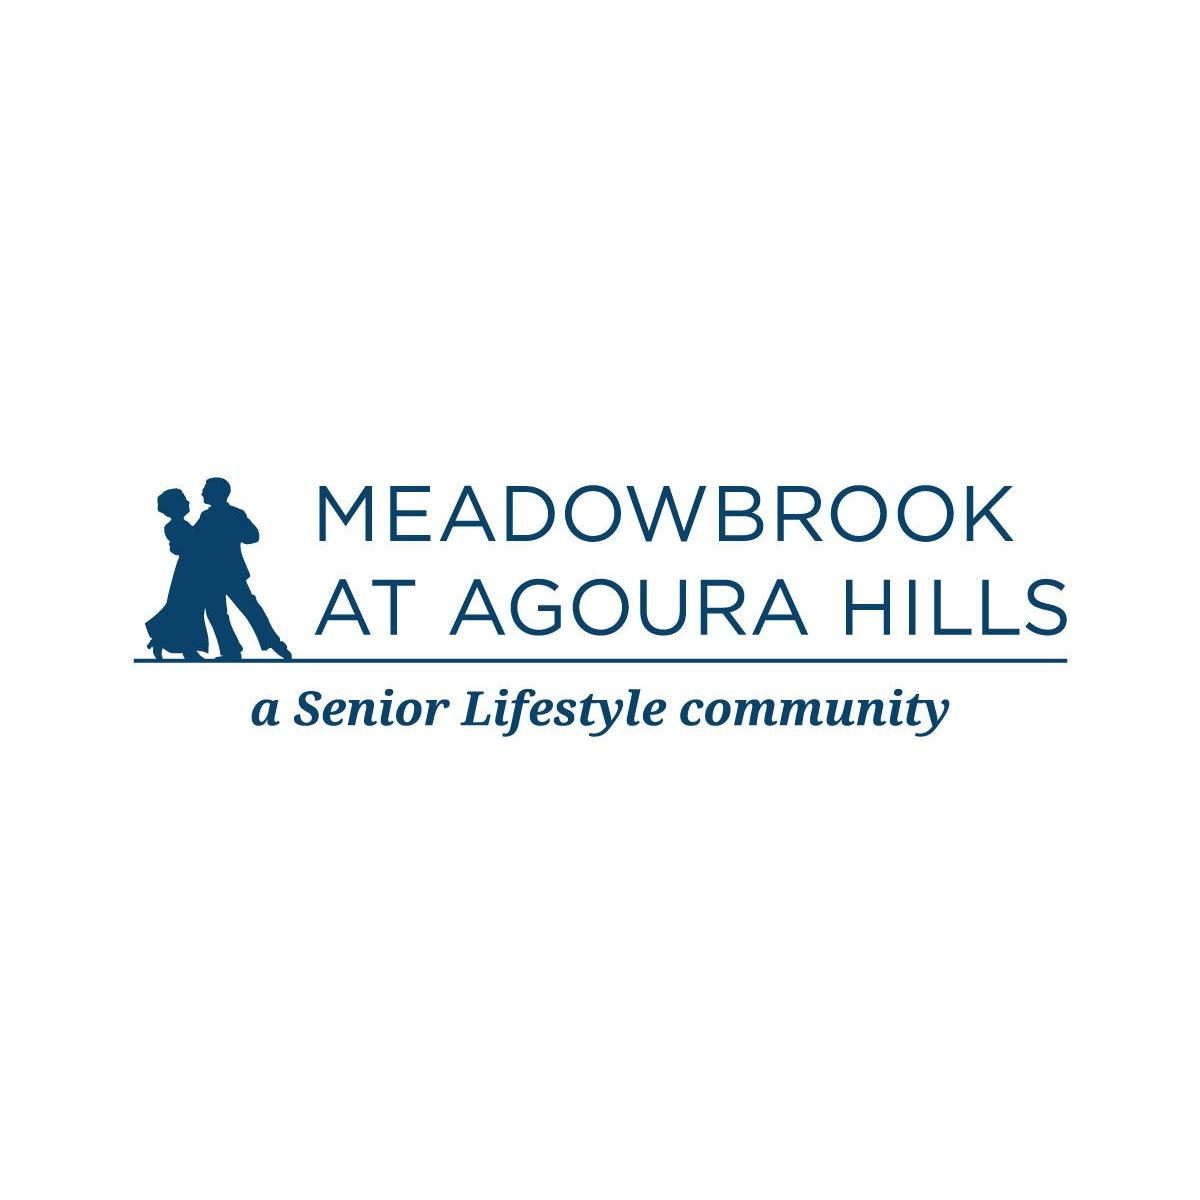 Meadowbrook of Agoura Hills